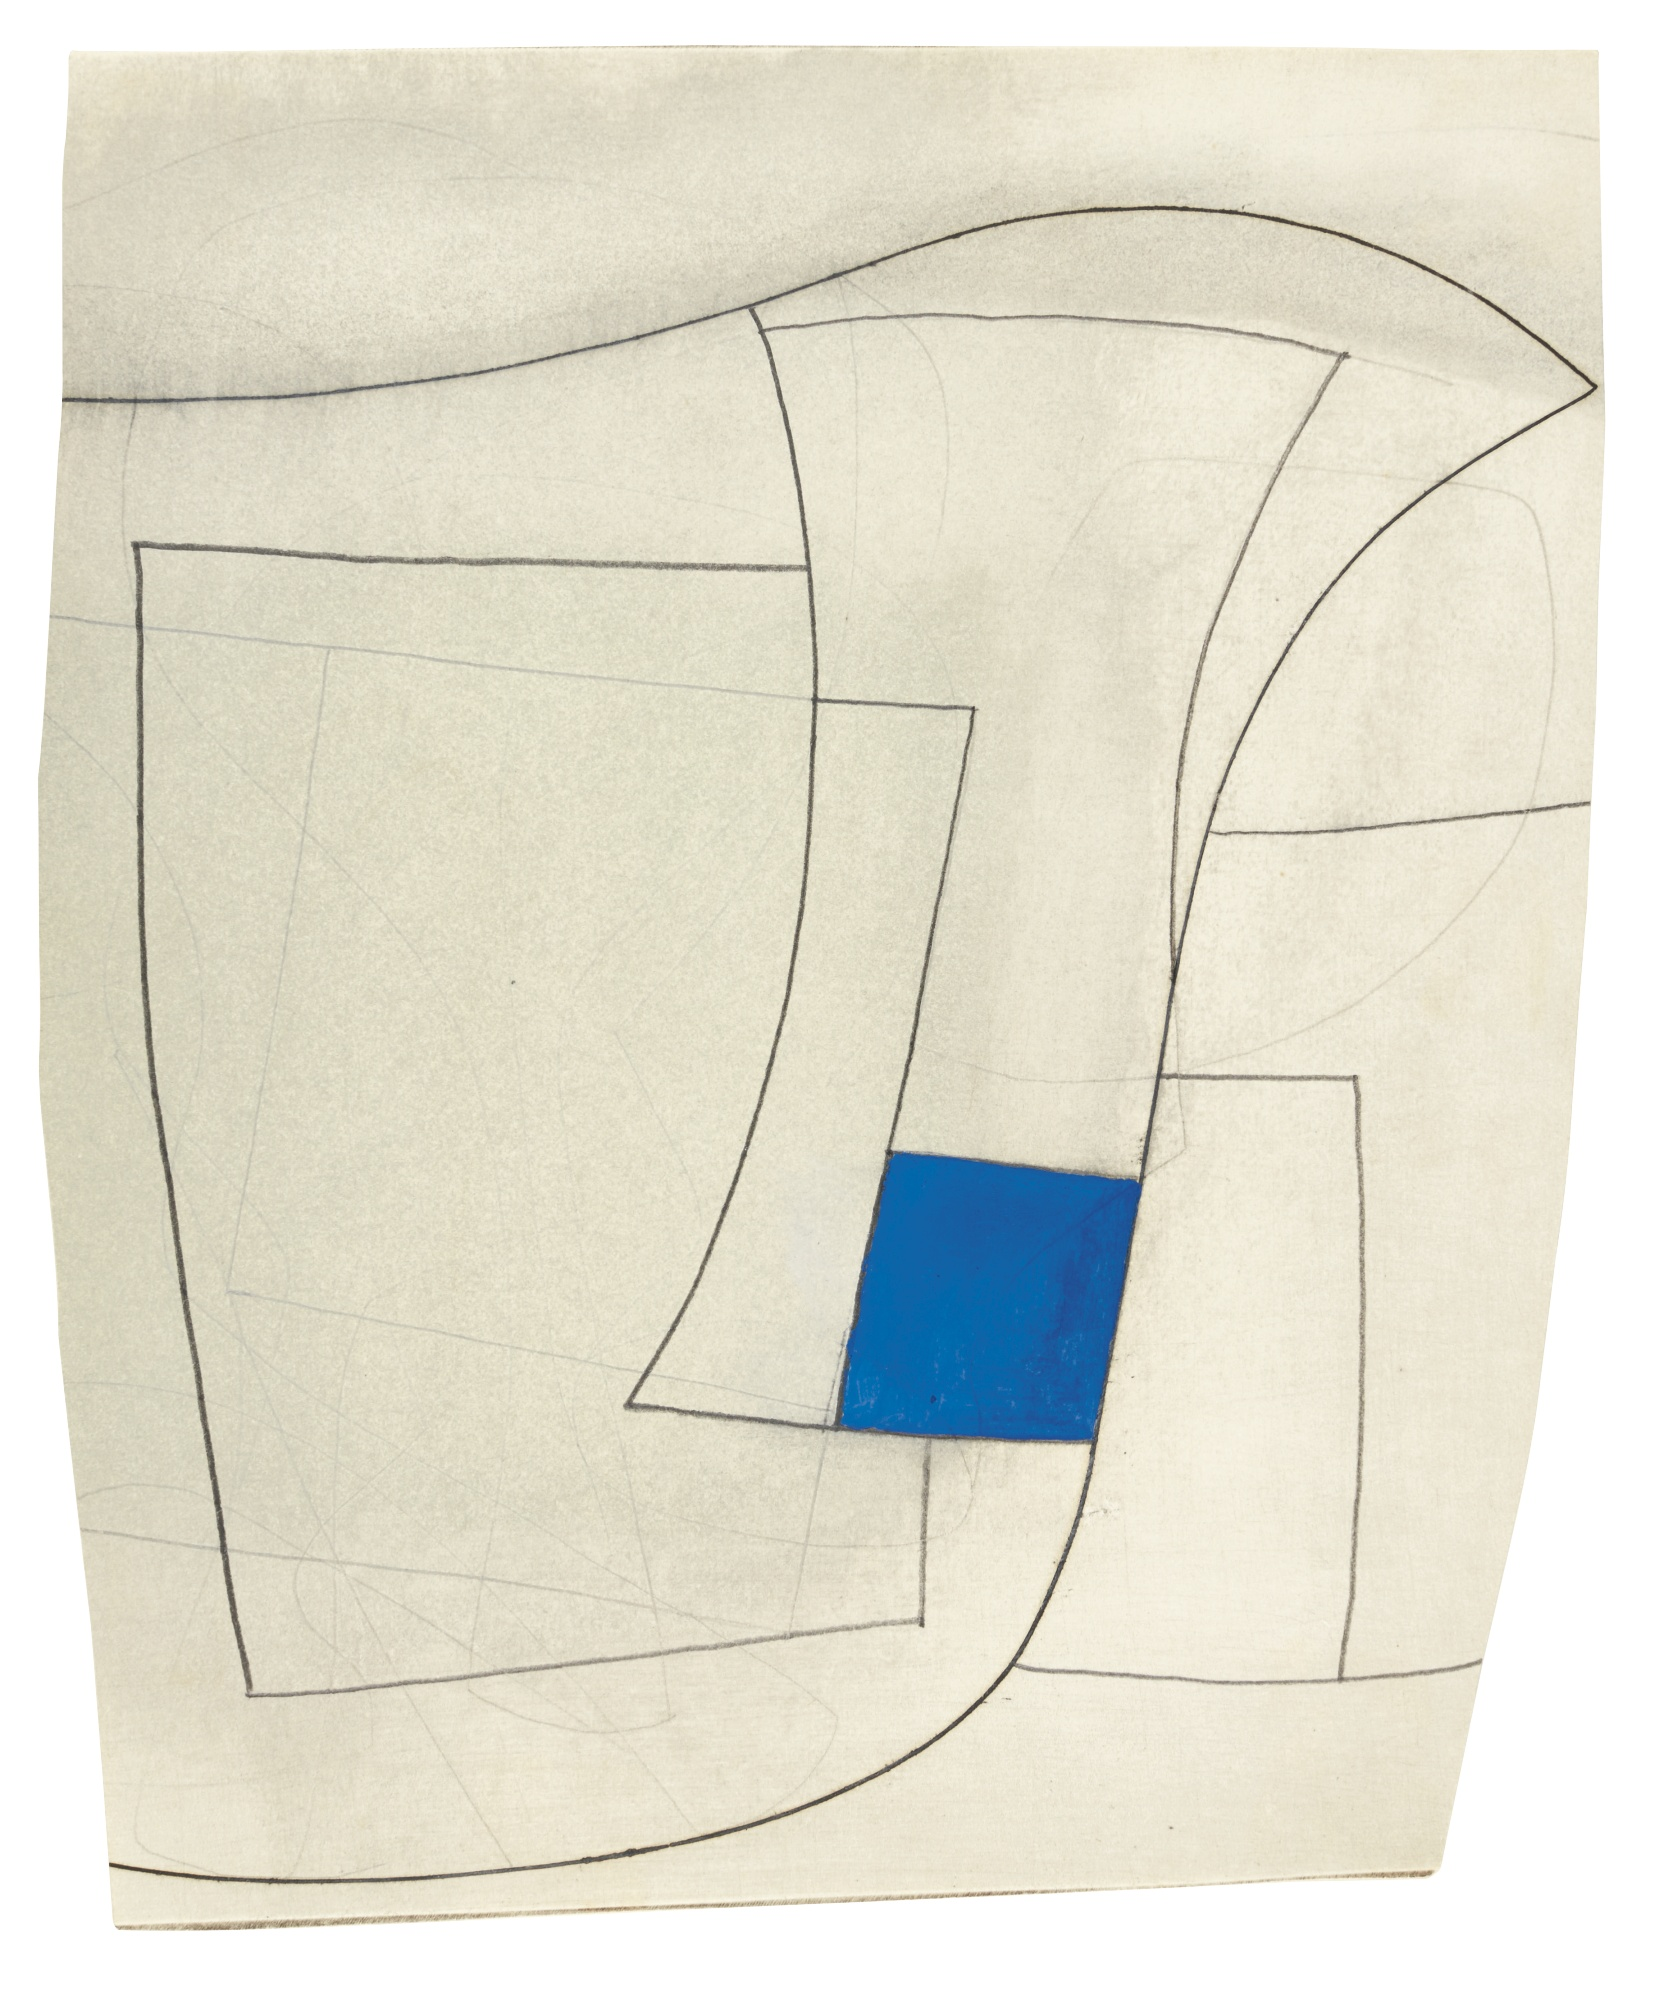 Ben Nicholson-Linear With Blue-1969